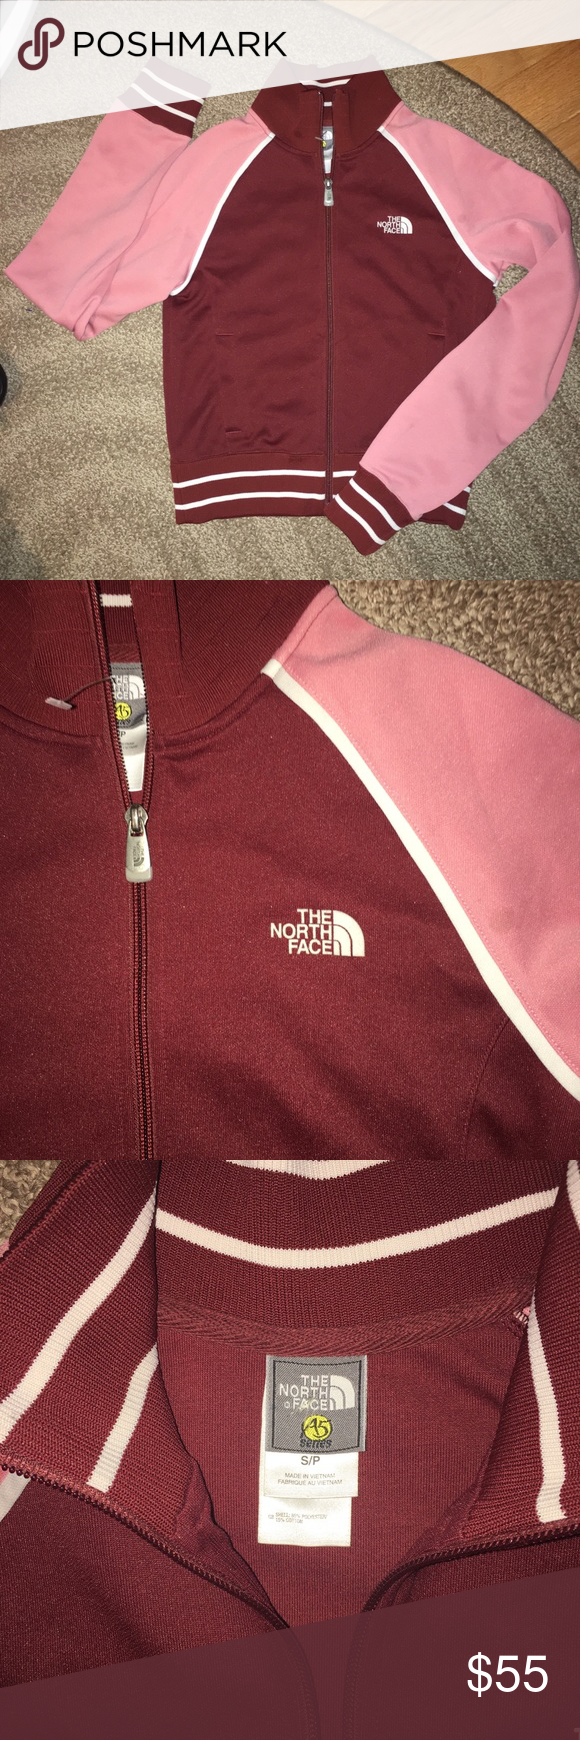 The North Face Jacket A 5 Series North Face Jacket Sporty Jacket Jackets [ 1740 x 580 Pixel ]